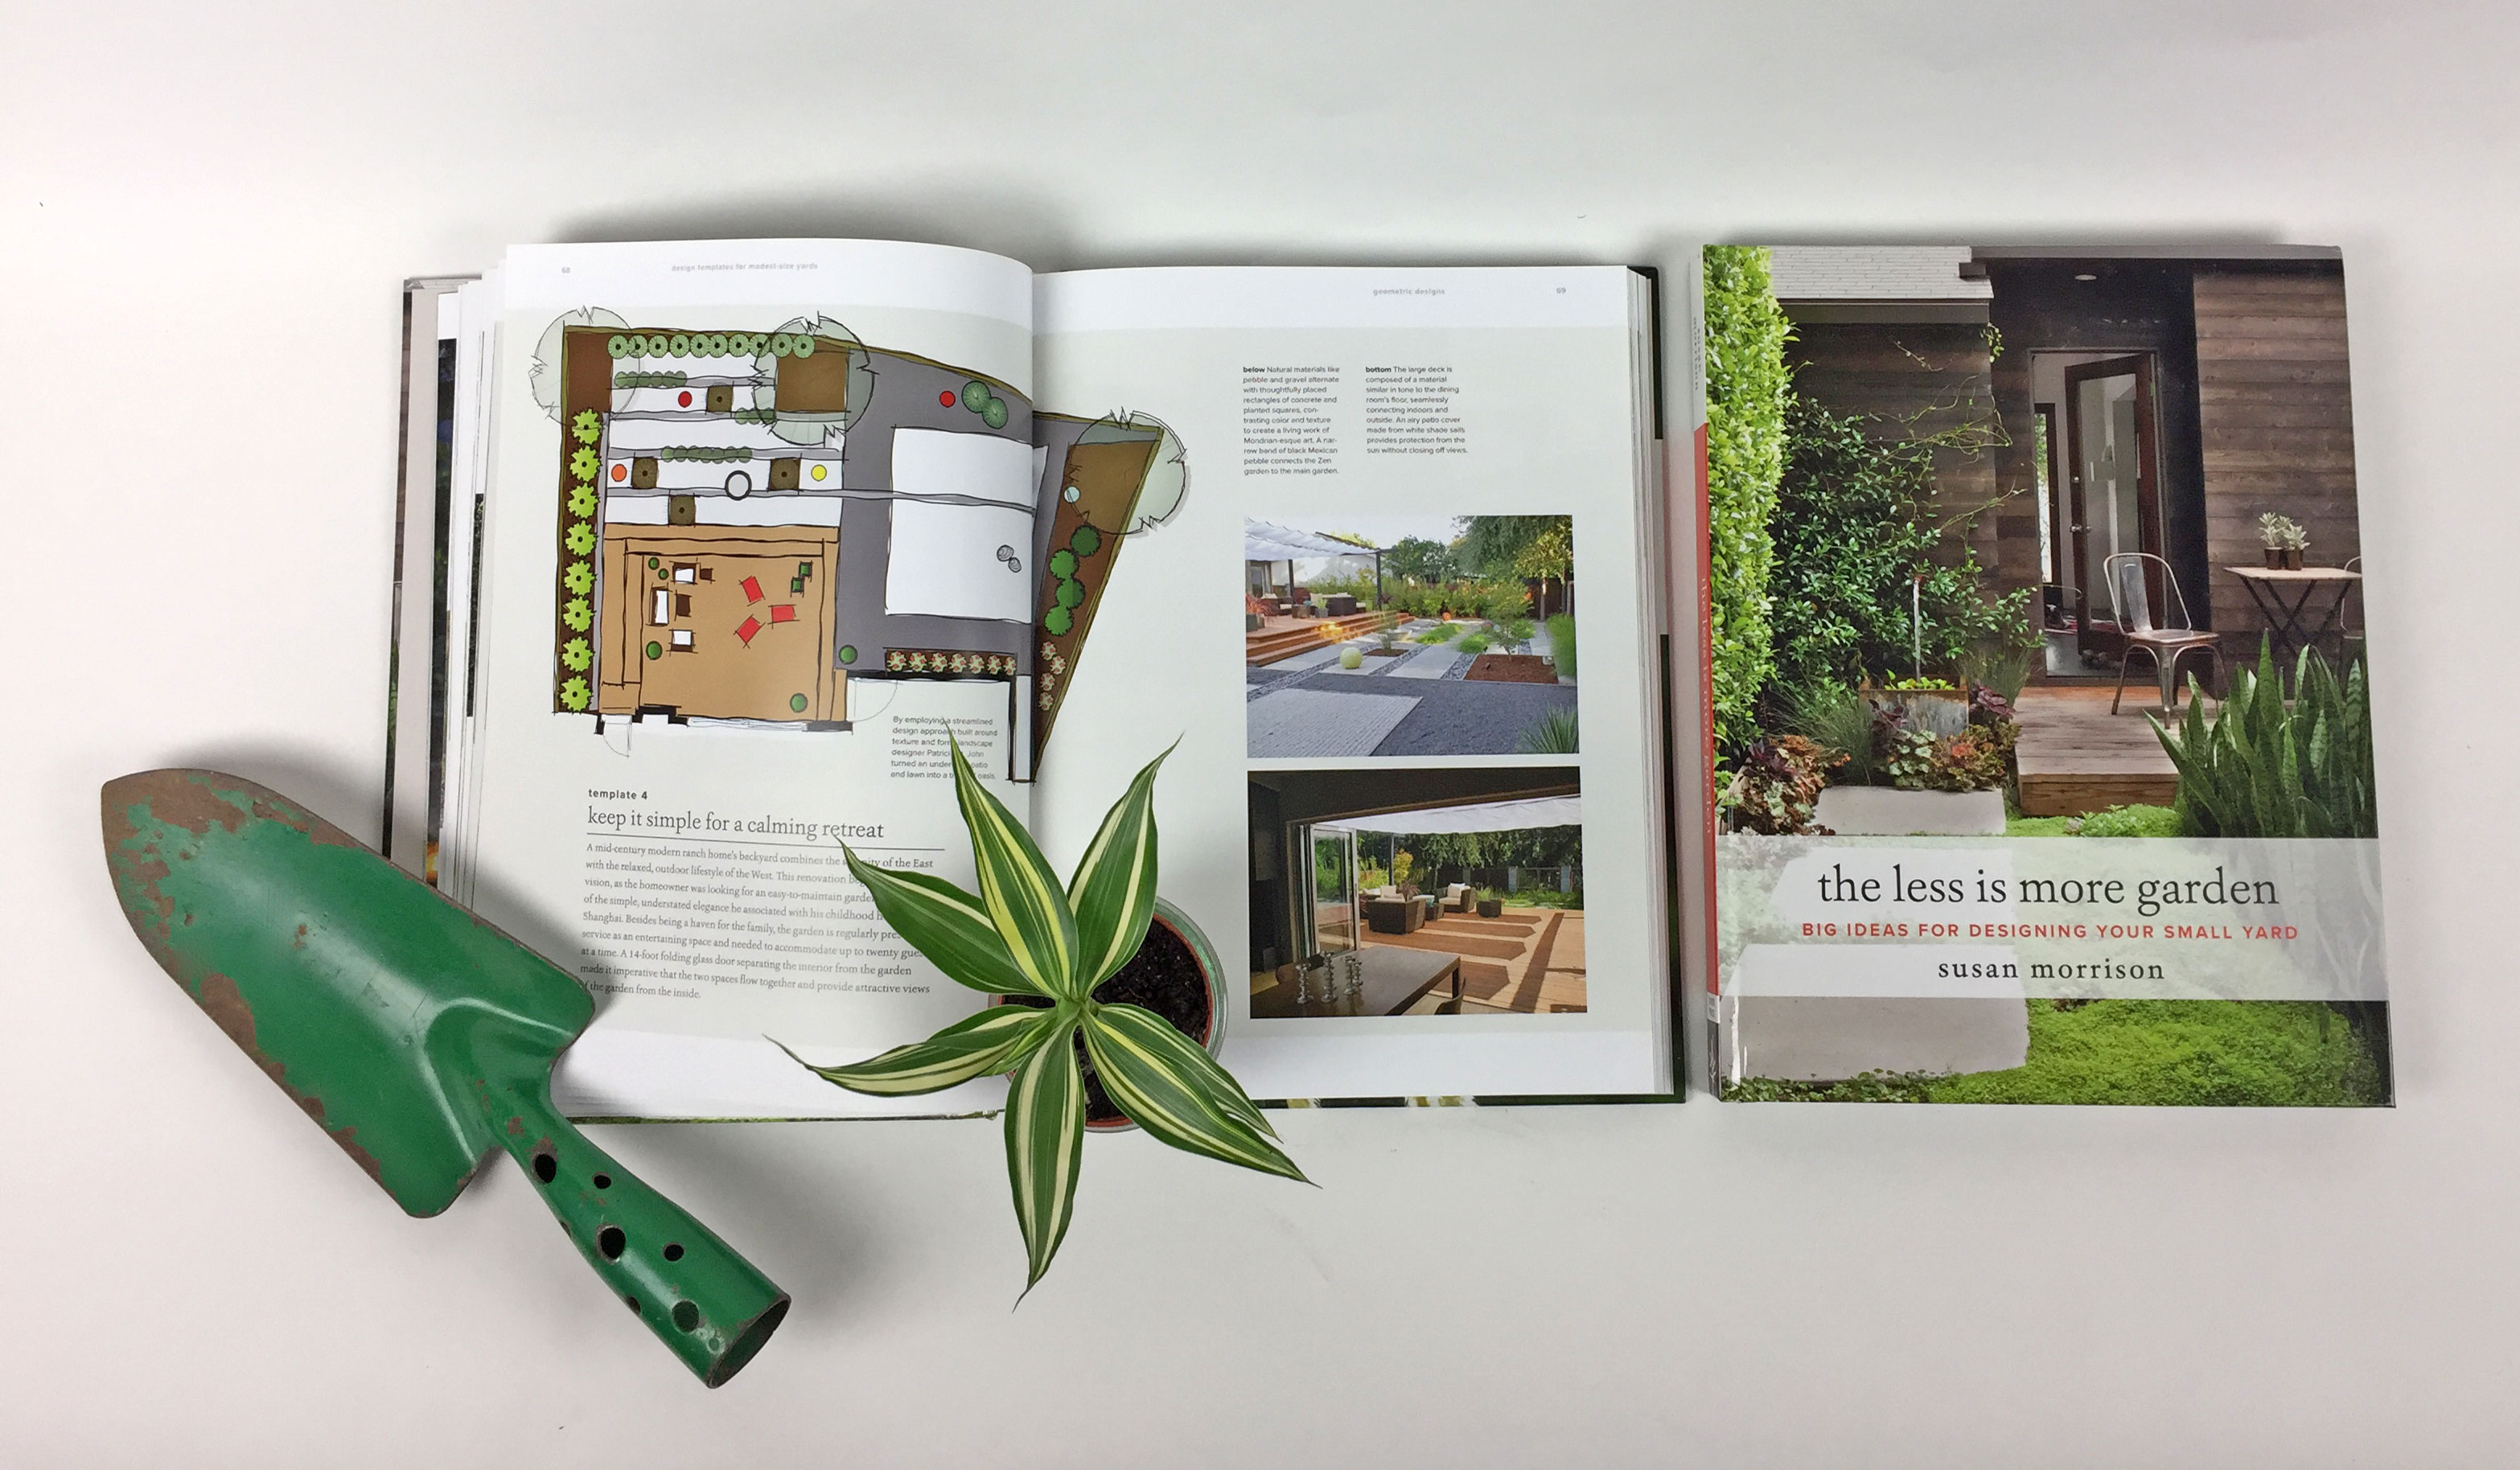 The Less Is More Garden Workman Publishing